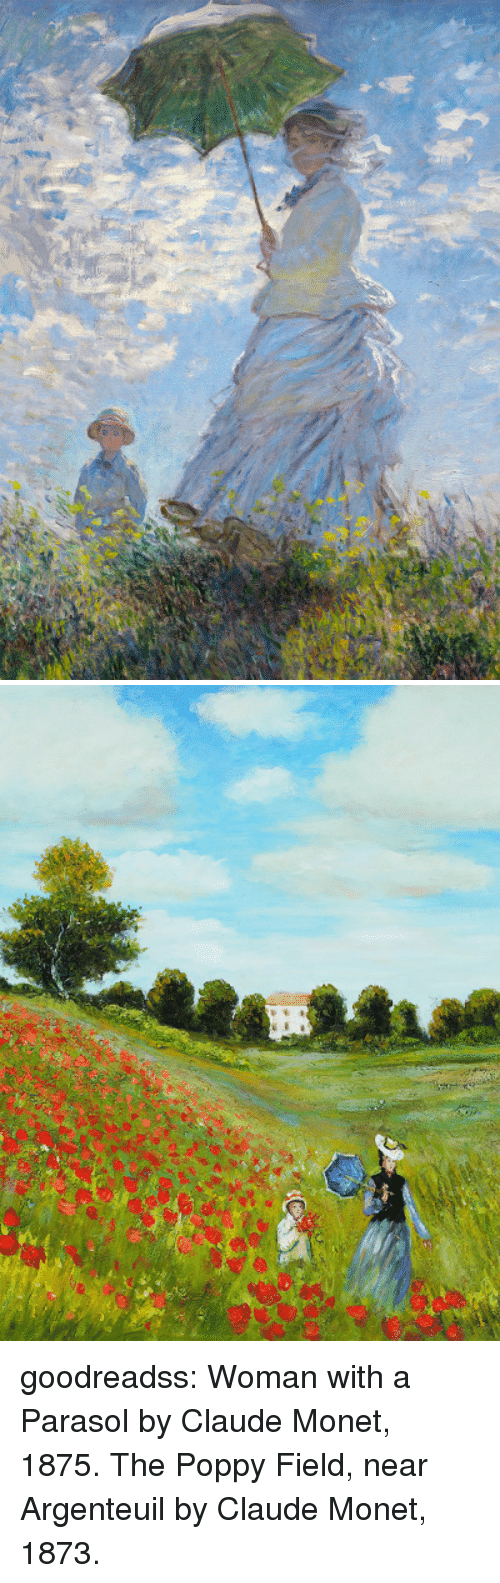 poppy field: goodreadss:    Woman with a Parasol by Claude Monet, 1875.     The Poppy Field, near Argenteuil by Claude Monet, 1873.